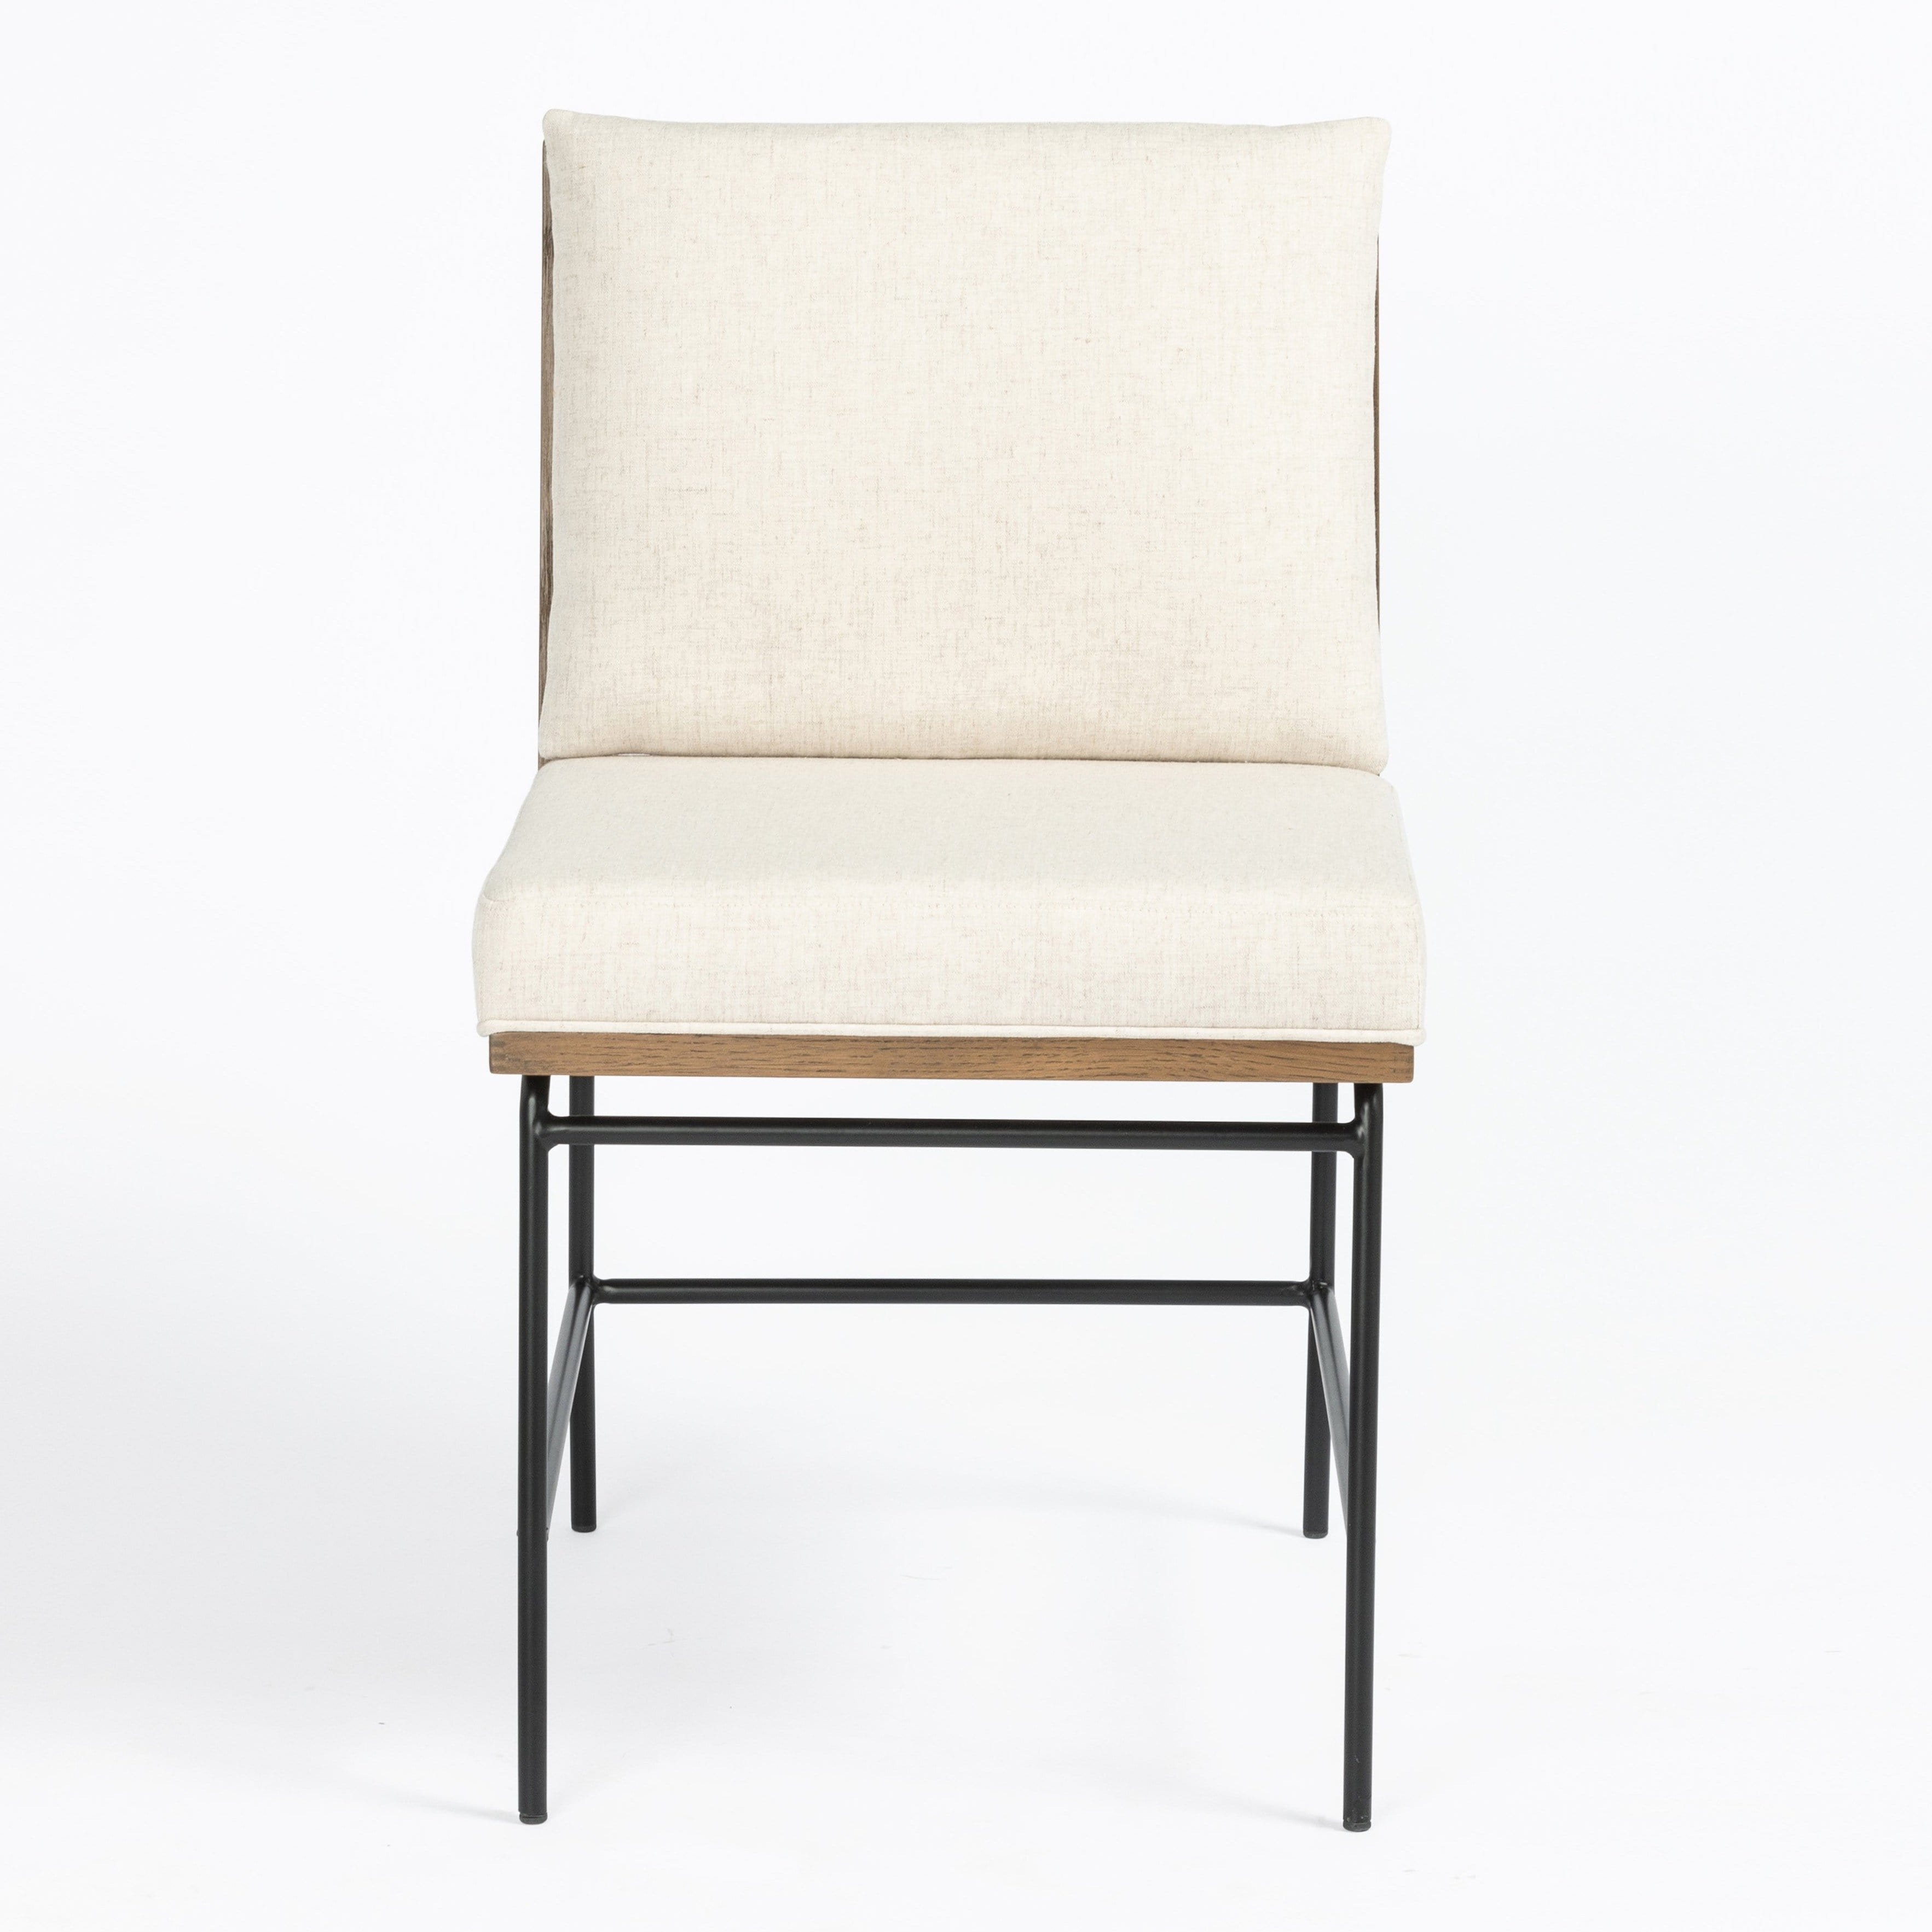 Four Hands Crete Dining Chair - Ivory